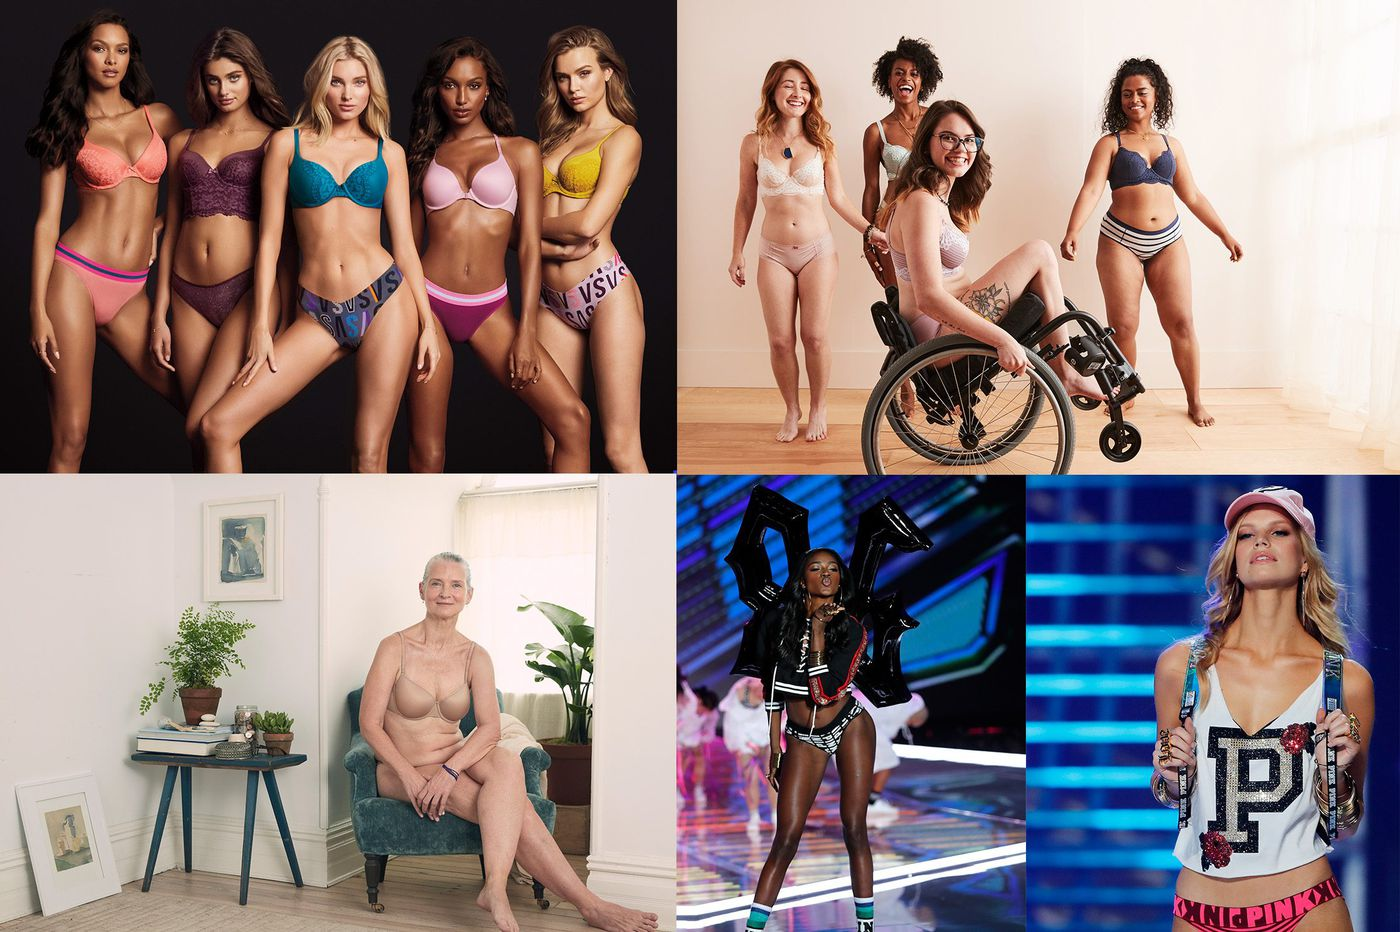 1138cf96f1ab9 Lingerie leader Victoria's Secret has new competition: Brands embracing  body positivity